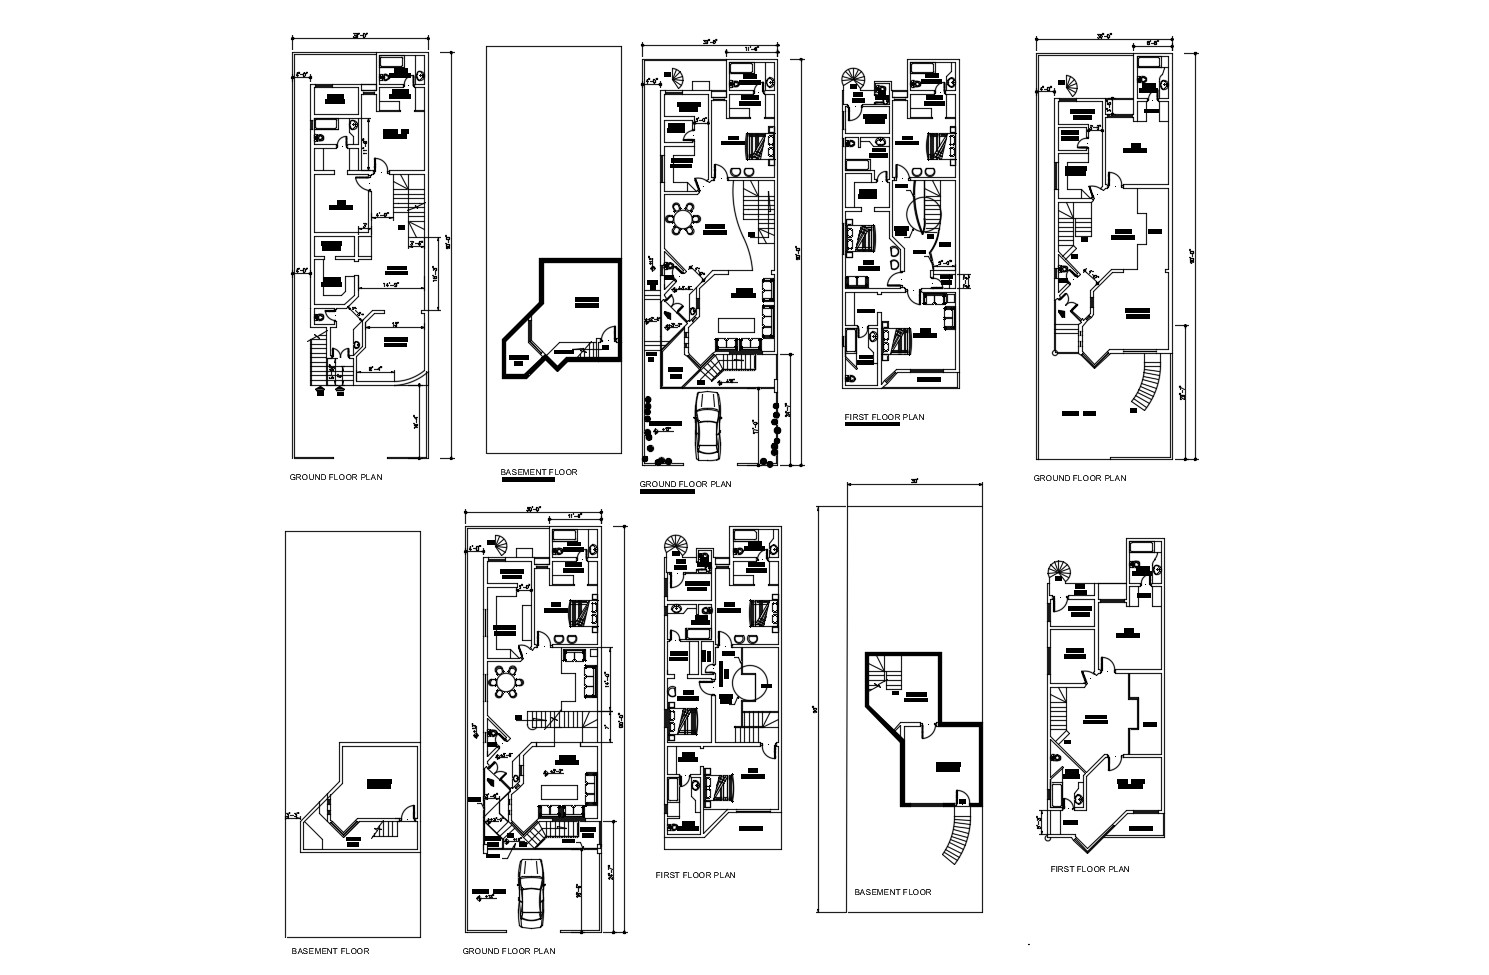 Autocad drawing of house 30'00'' x 90'00'' with furniture detail in dwg file